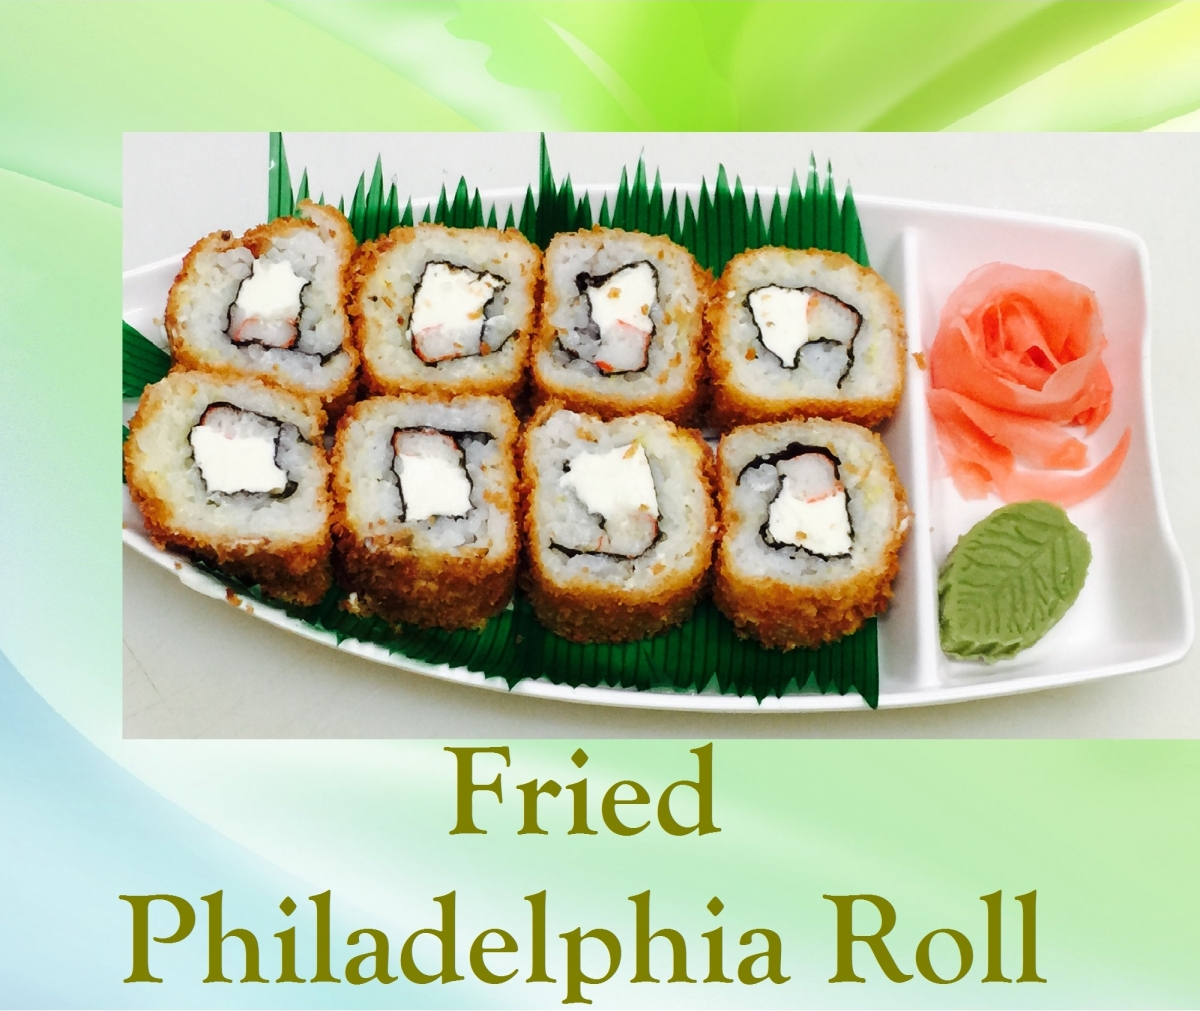 Fried Philadelphia Roll